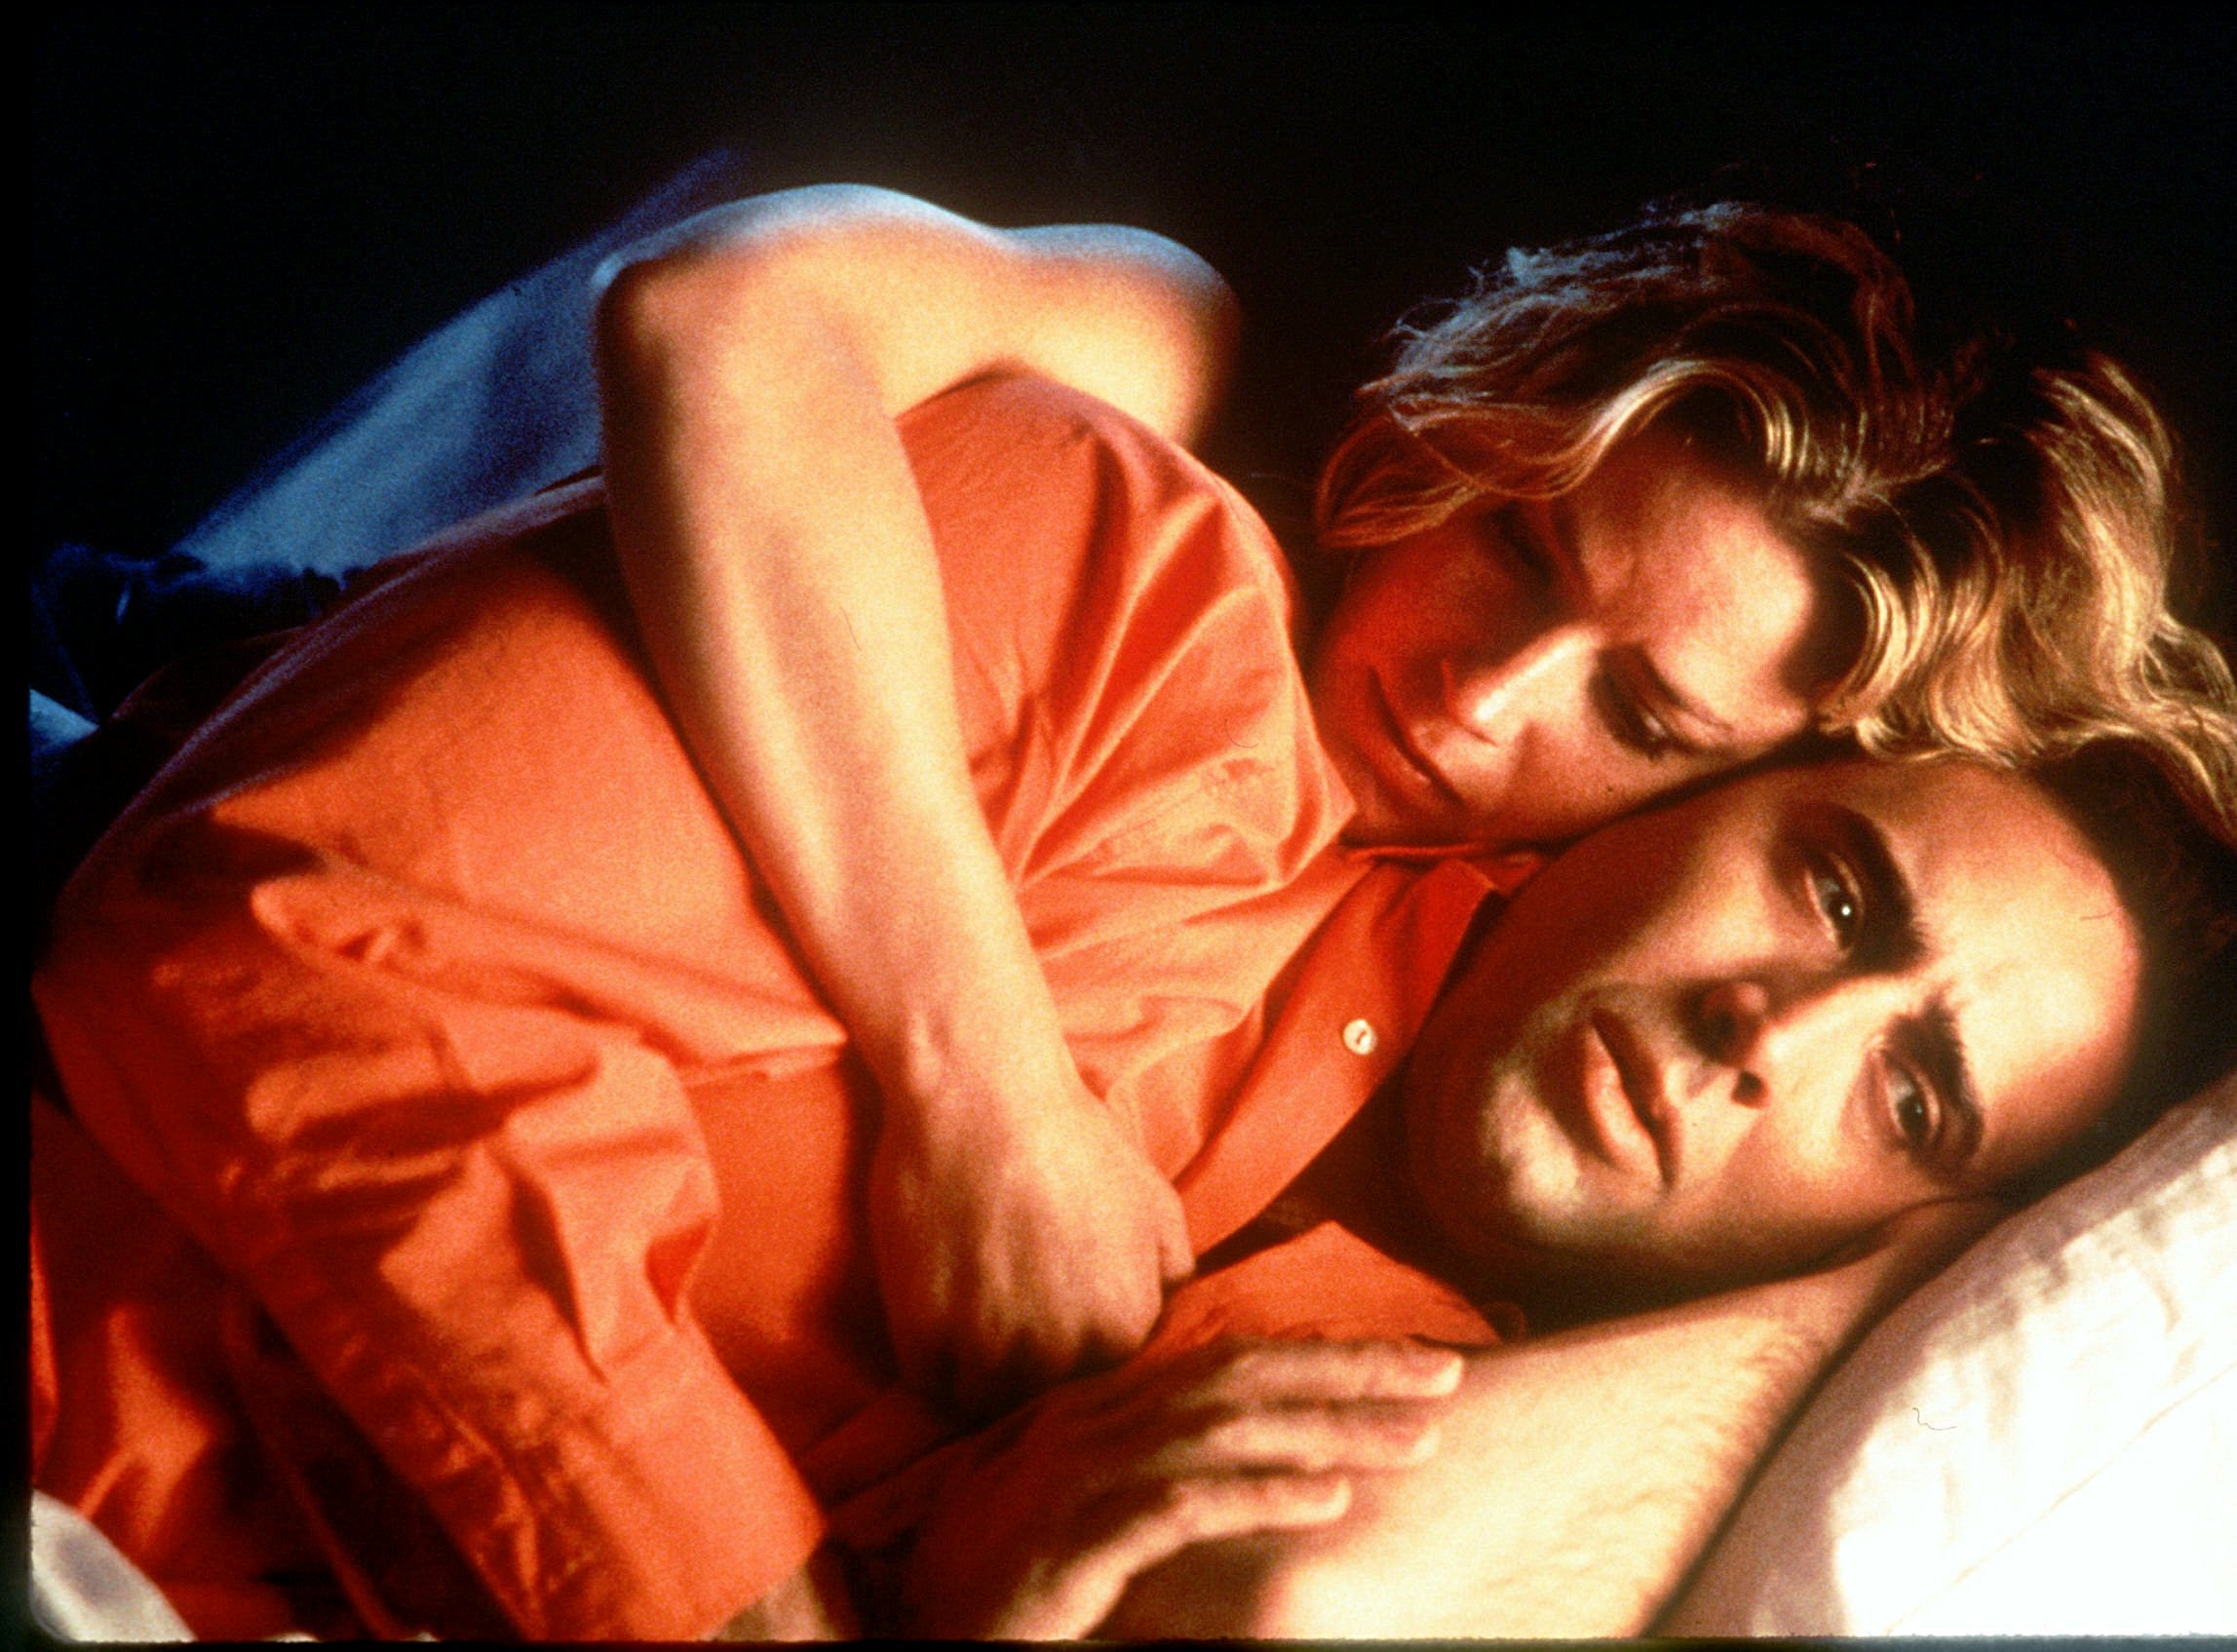 """DATE TAKEN: 1995 --- Nicolas Cage and Elisabeth Shue in a scene from the film """" Leaving Las Vegas """" ORG XMIT: UT10599"""